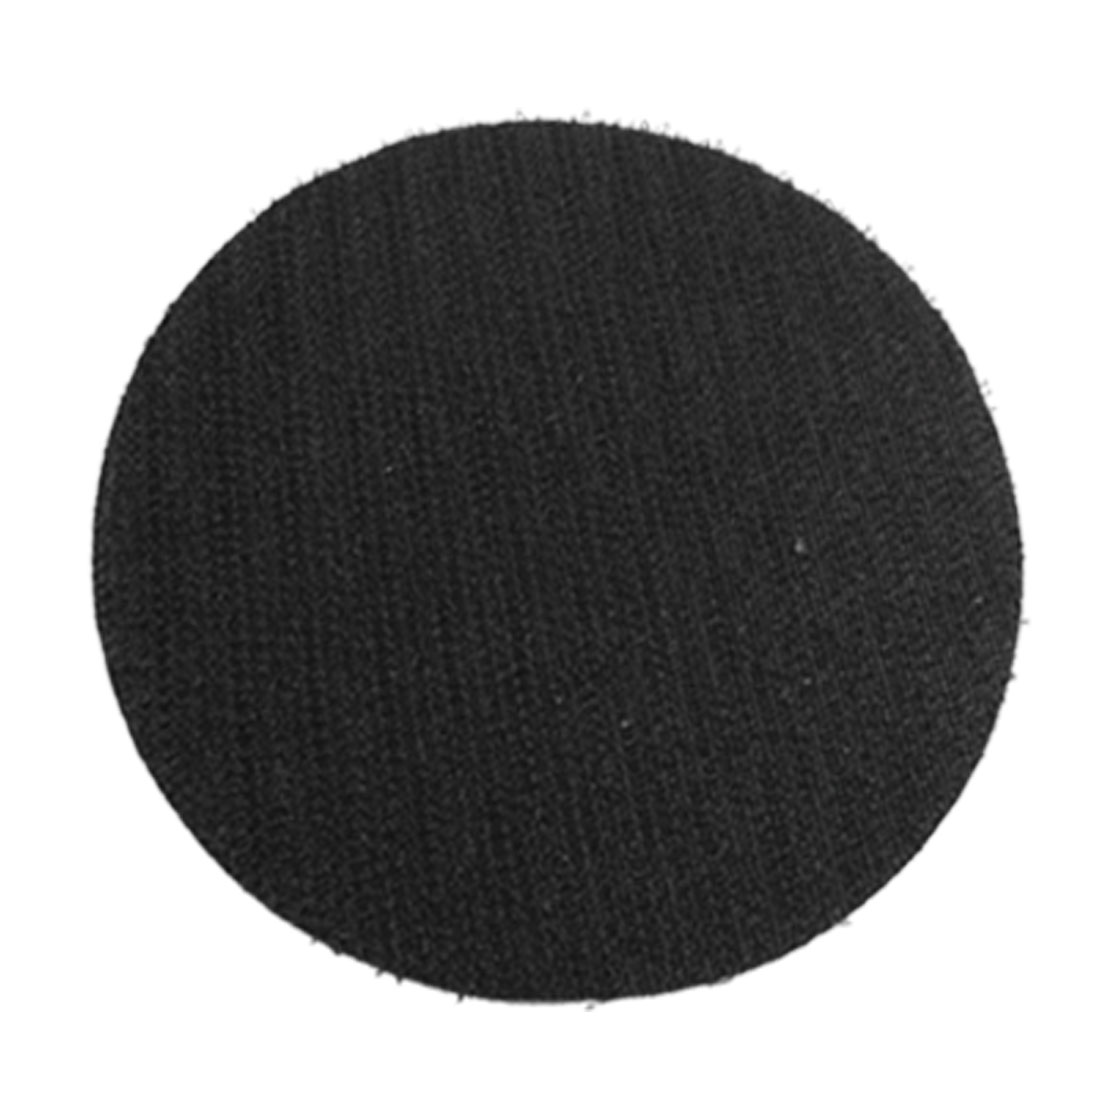 10cm Dia Abrasive Reinforced Grinding Wheel Black Yellow